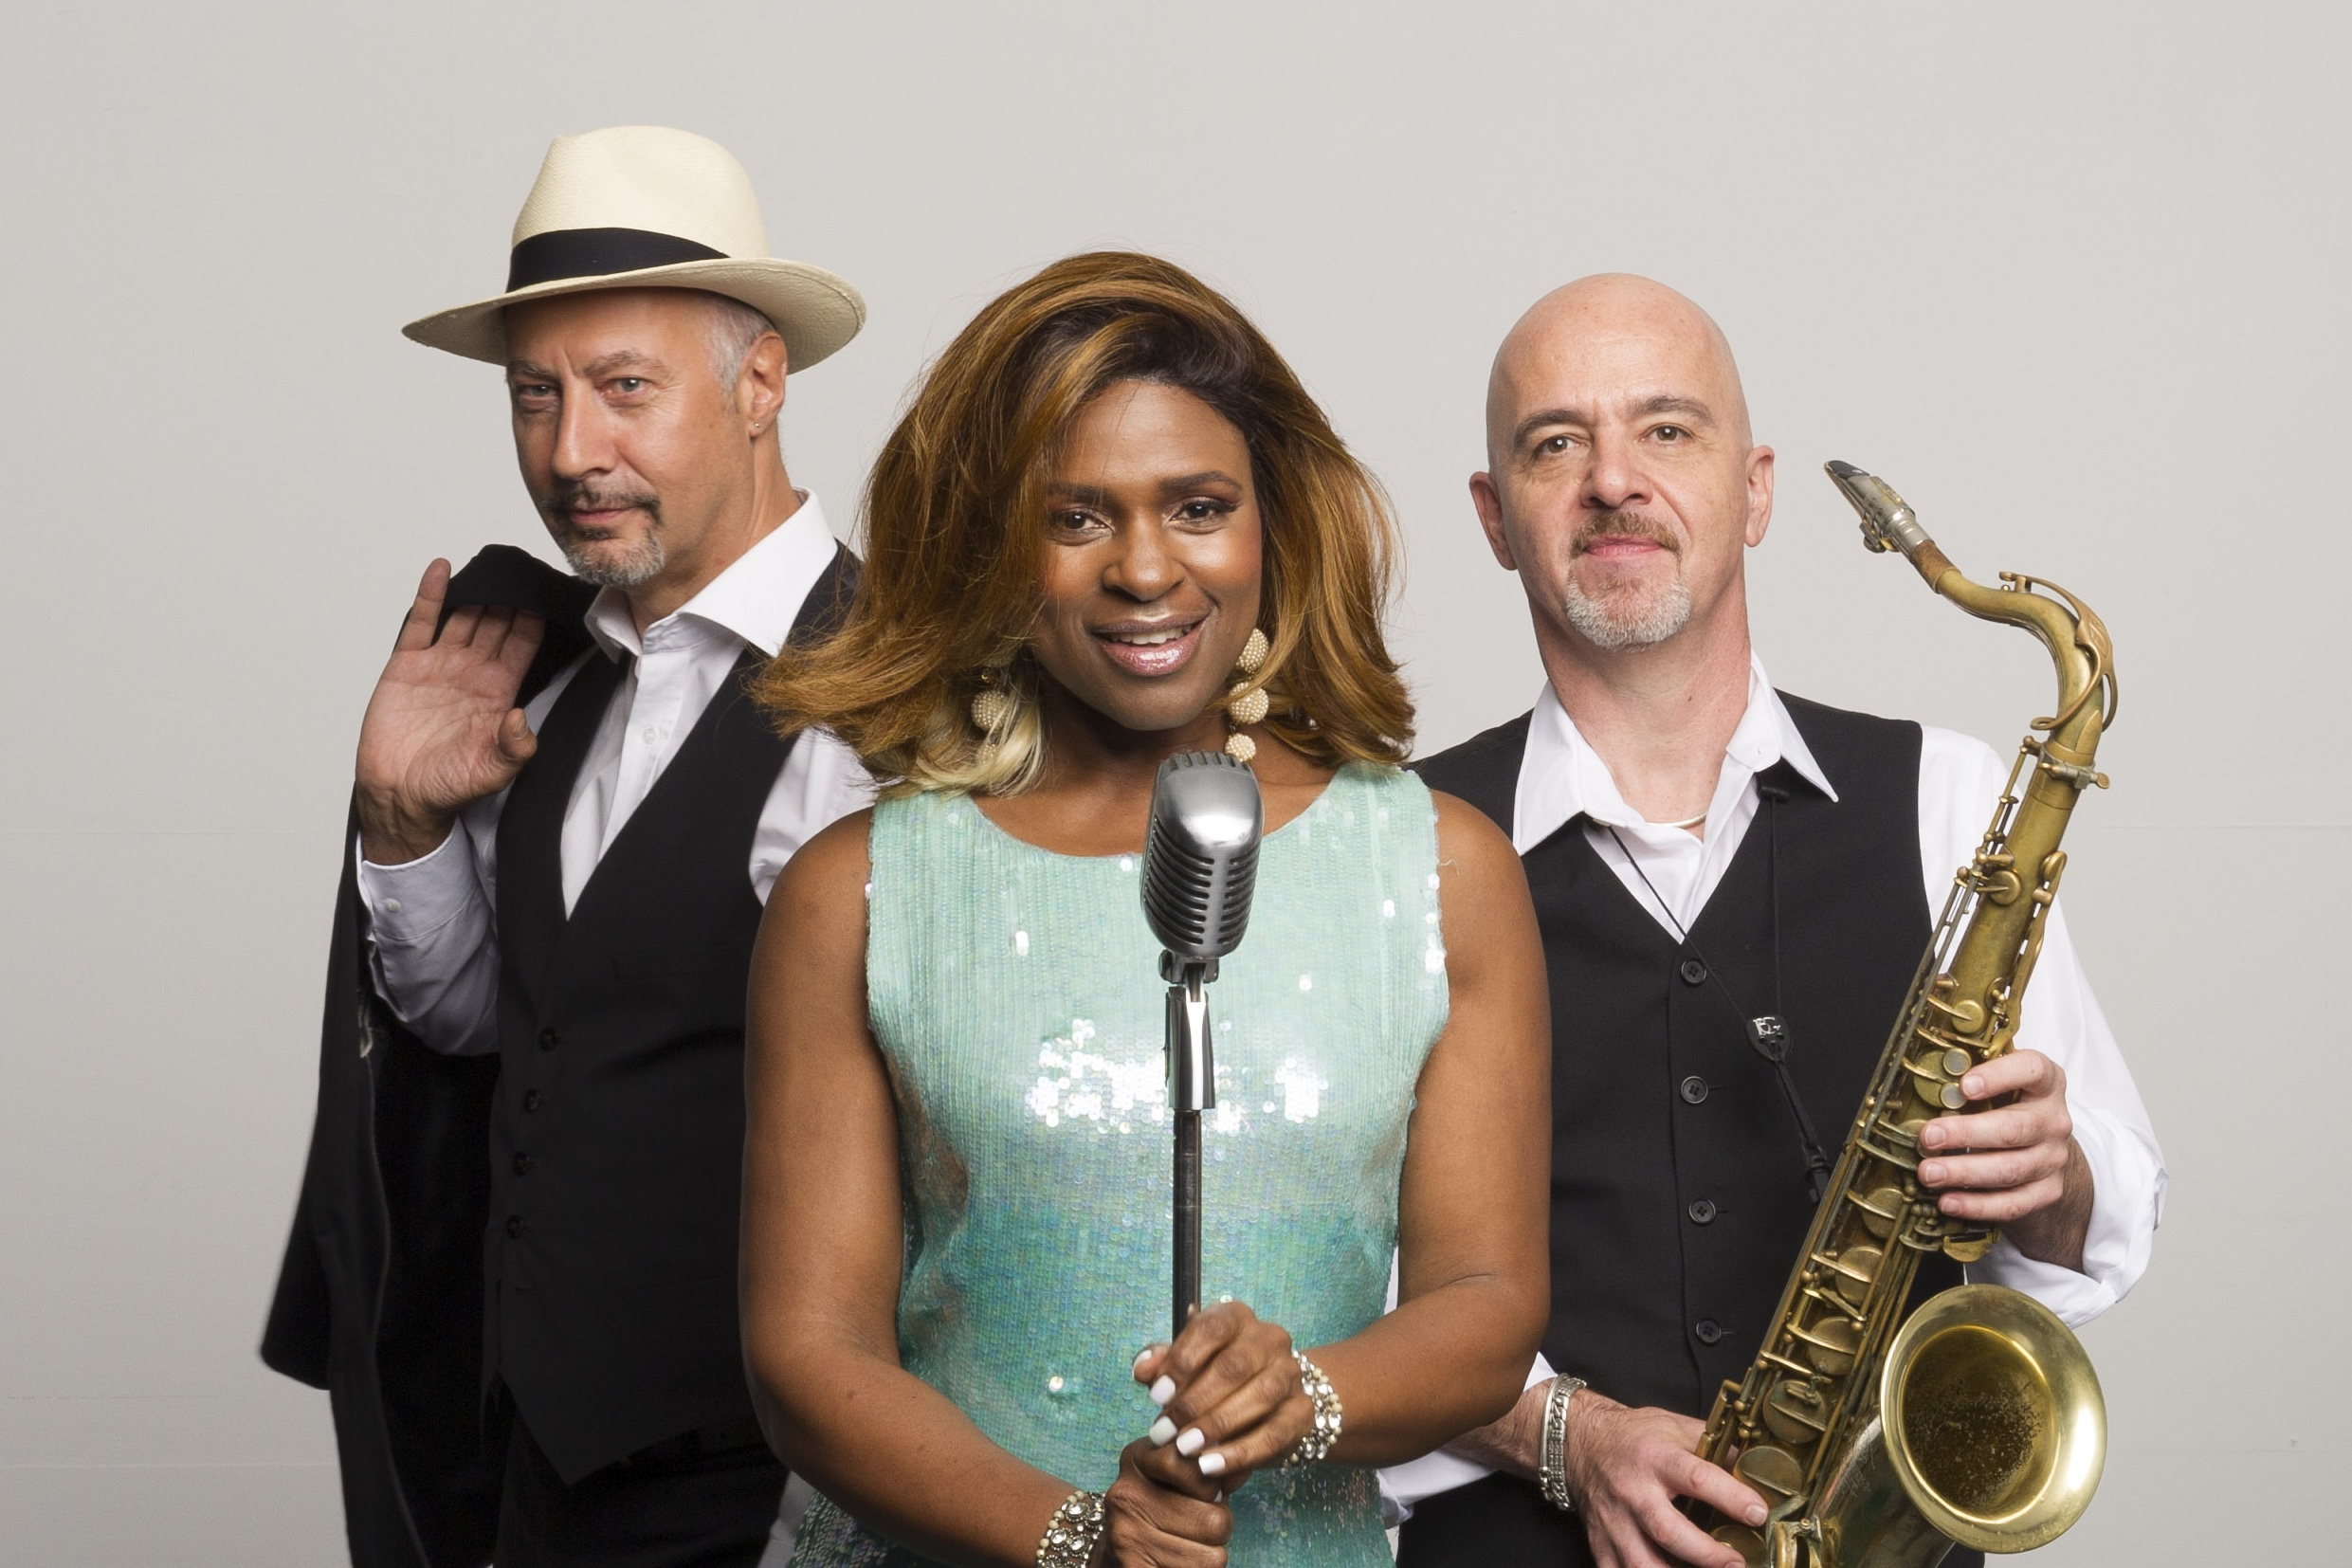 Four for the Blues, Three for the Blues, Two for the Blues, Bluesax, Janet Dawkins, Band Buchen, Band Hochzeit, Hochzeitsband, Musik für Fest, Musik für Geburtstag, Musik für Event, Band Geburtstag, Live Band, Live Band Schweiz, Live Band Zürich, Live Band Winterthur, Live Band Luzern, Live Band St. Gallen, Live Musik Schweiz, Live Musik Zürich, Live Musik Winterthur, Live Musik Luzern, Live Musik St. Gallen Live Band, Live Musiker, Live Jazz Band, Jazz Band, Jazz Band Schweiz, Jazz Band Zürich, Jazz Band Winterthur, Jazz Band Luzern, Jazz Band St. Gallen, Jazz Quartett, Jazz Trio, Jazz Konzert, Jazz Band mieten, Jazz Band buchen, Live Veranstaltung, Live Konzert, Blues Band